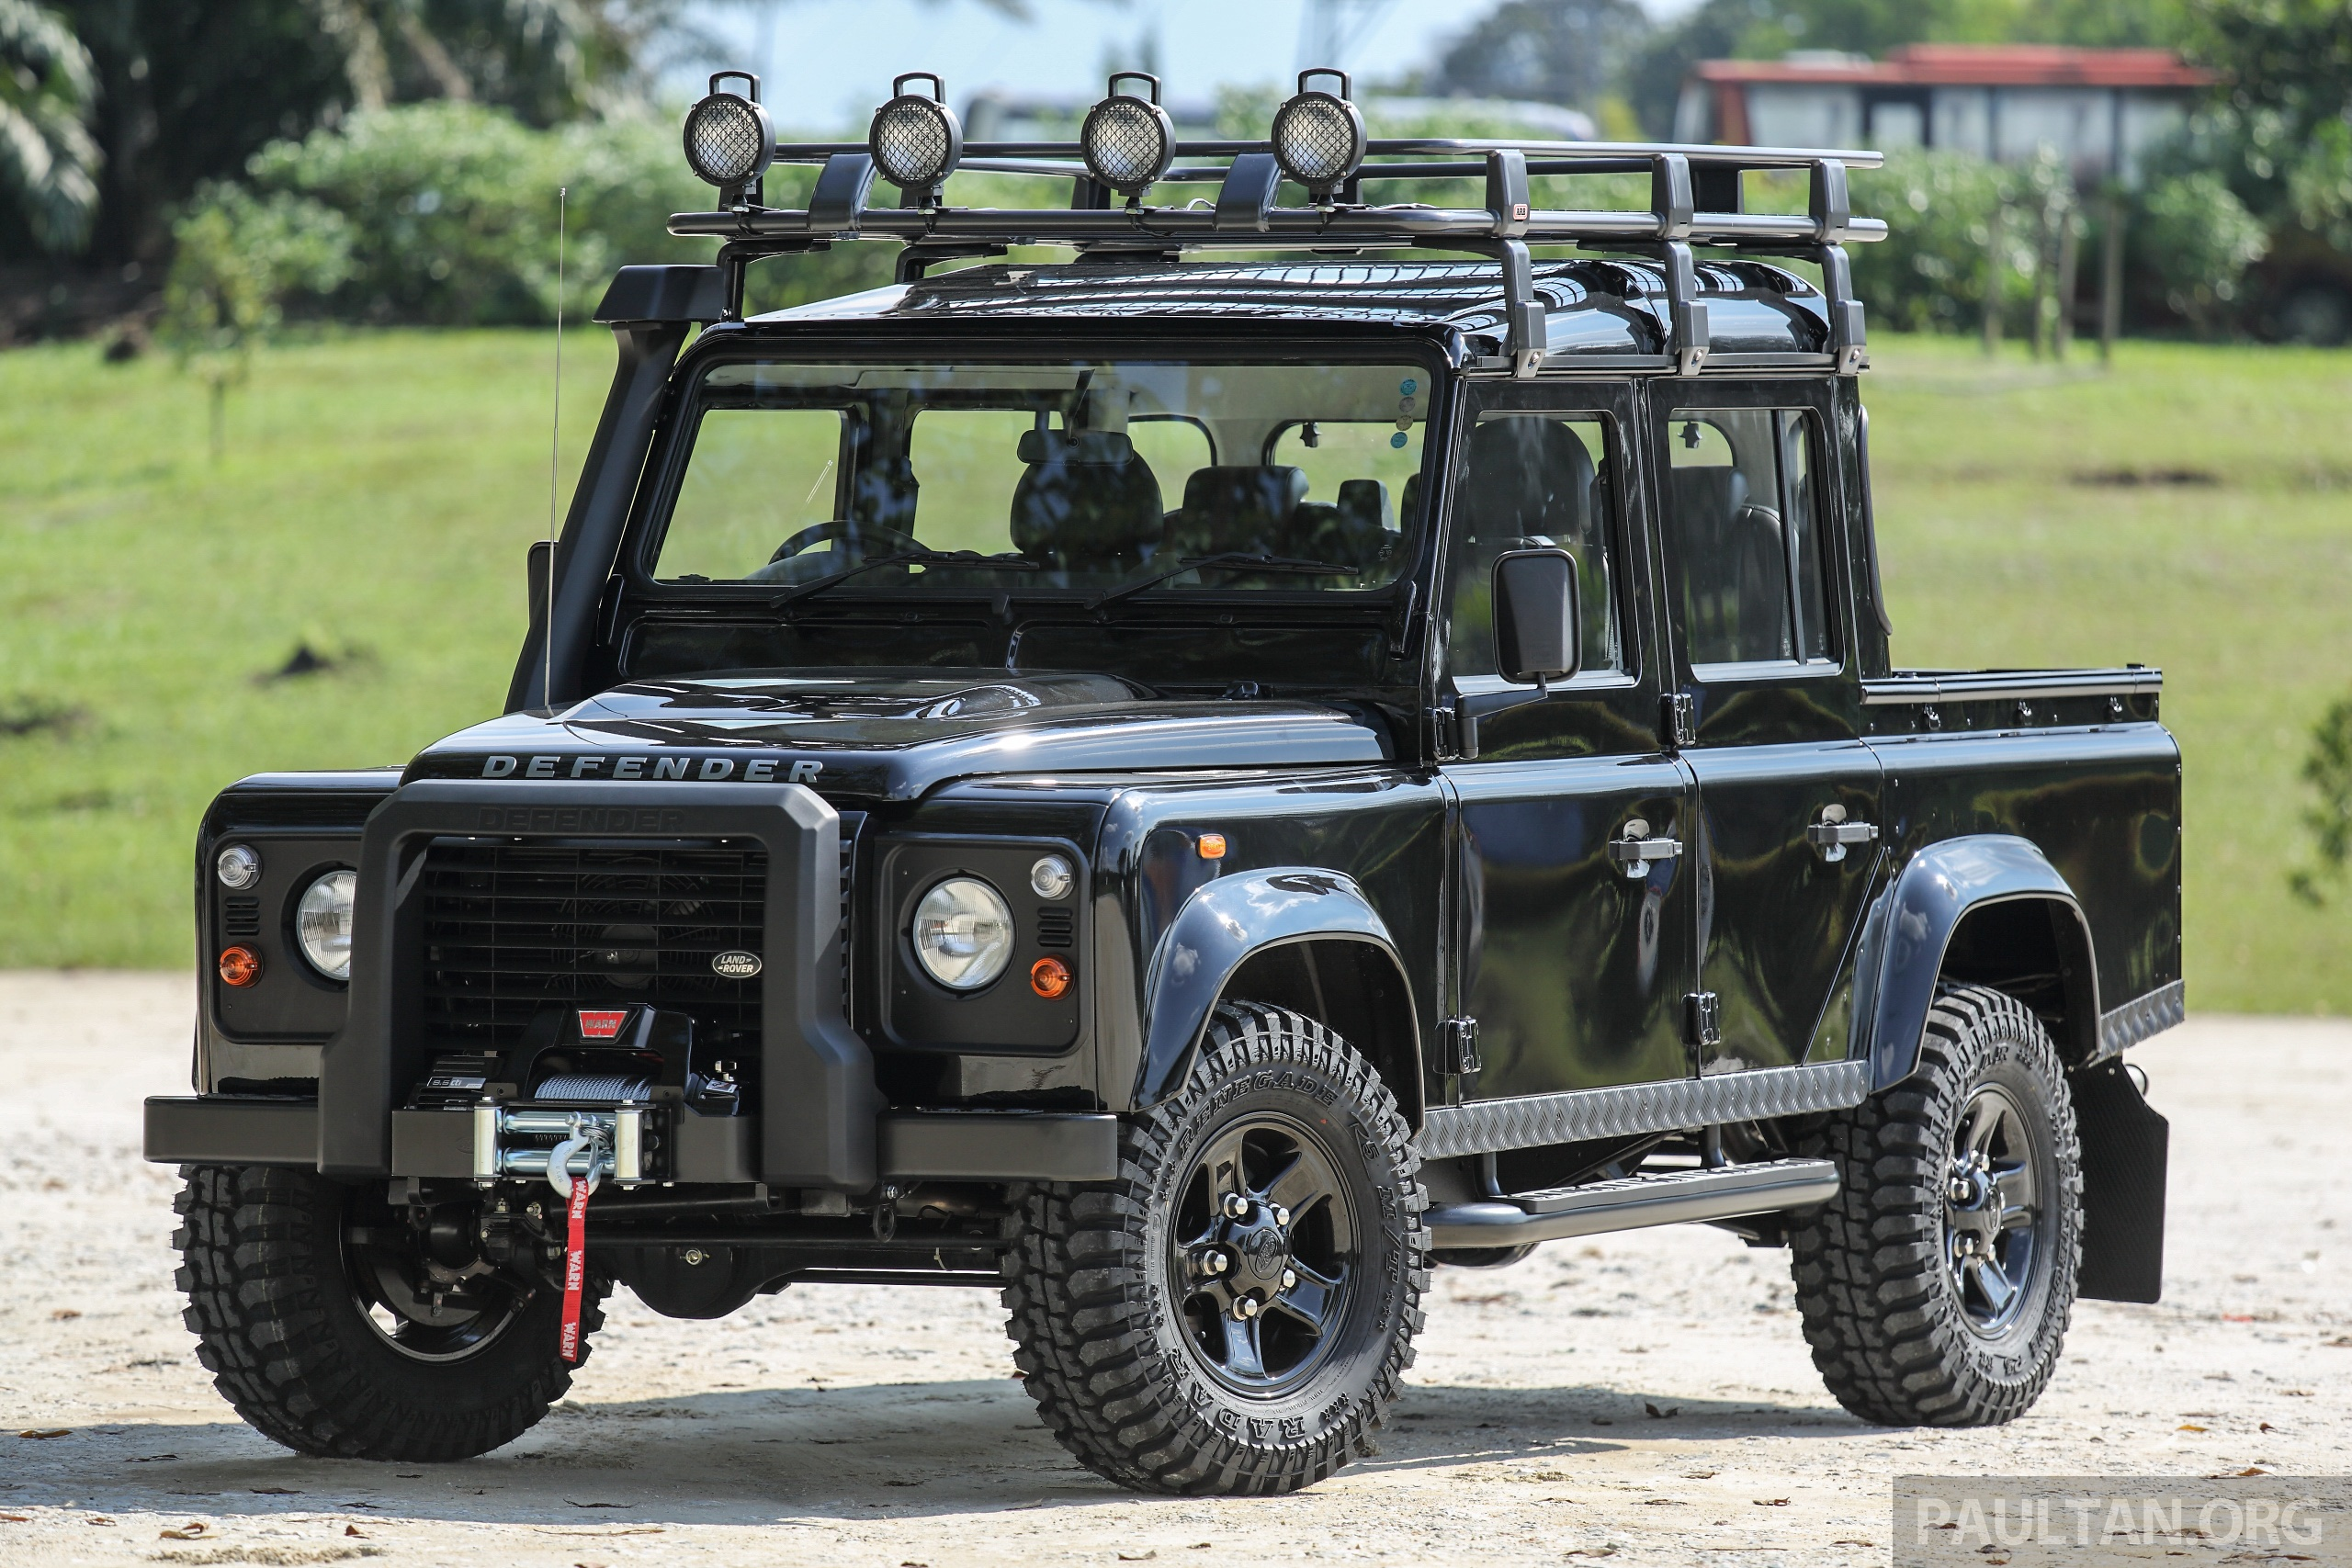 land rover defender malaysia with Land Rover Defender Limited Edition Malaysia  004 on Brabus B63s 700 6x6 Based Mercedes Benz G Glass News 895882 moreover Centerpieces further Land Rover Defender moreover Land Rover Defender 110 Xs Station Wagon Tweaked Edition further Watch.